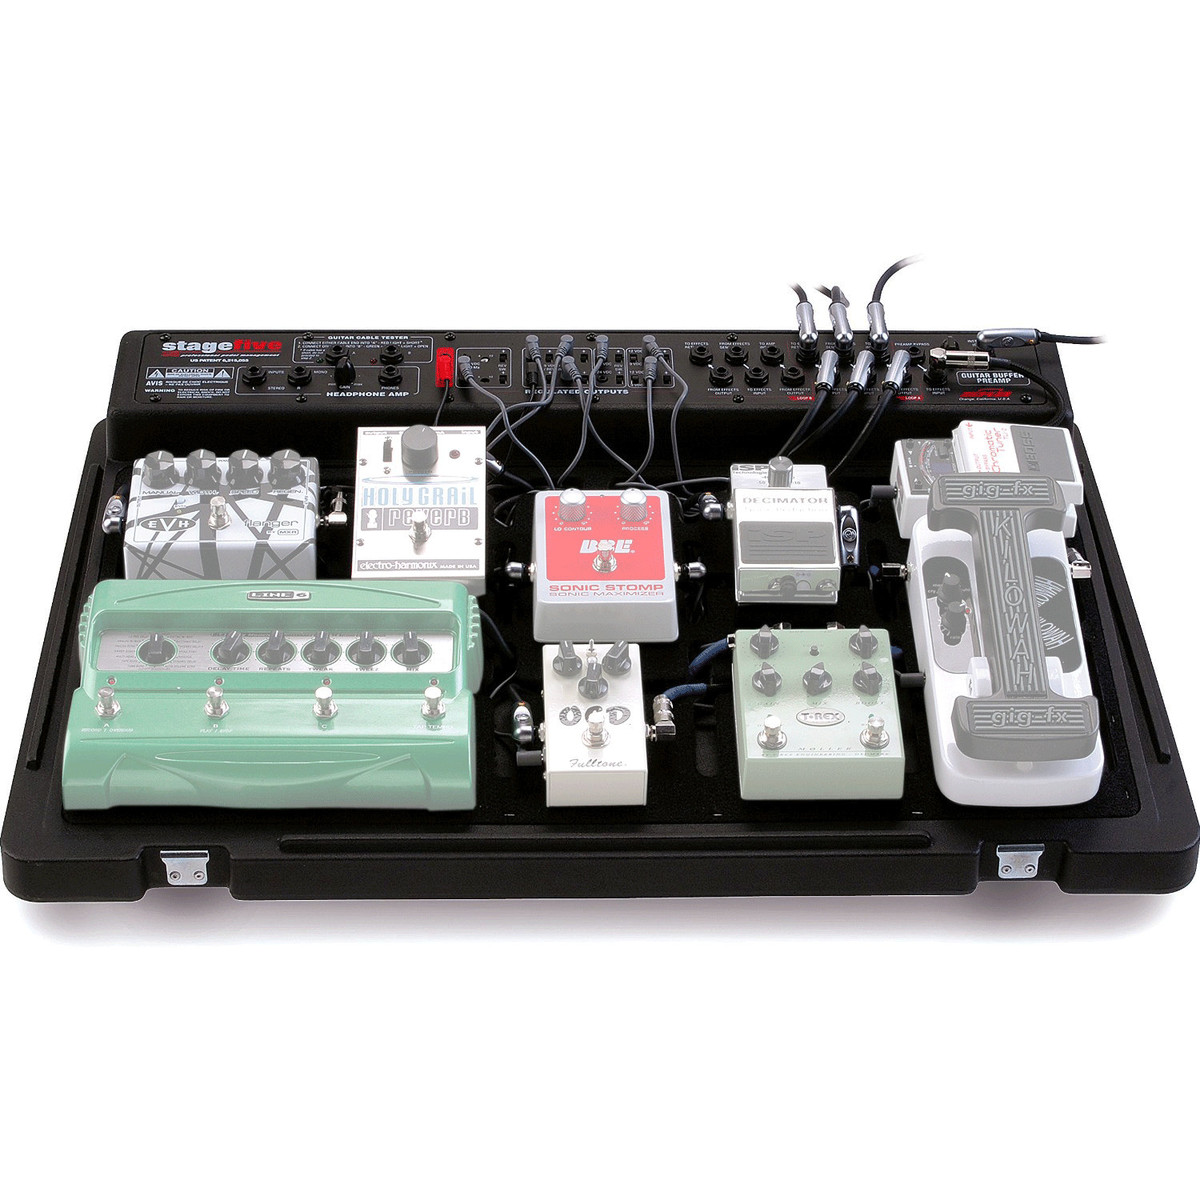 Skb Stagefive Professional Pedal Board Uk Power Supply